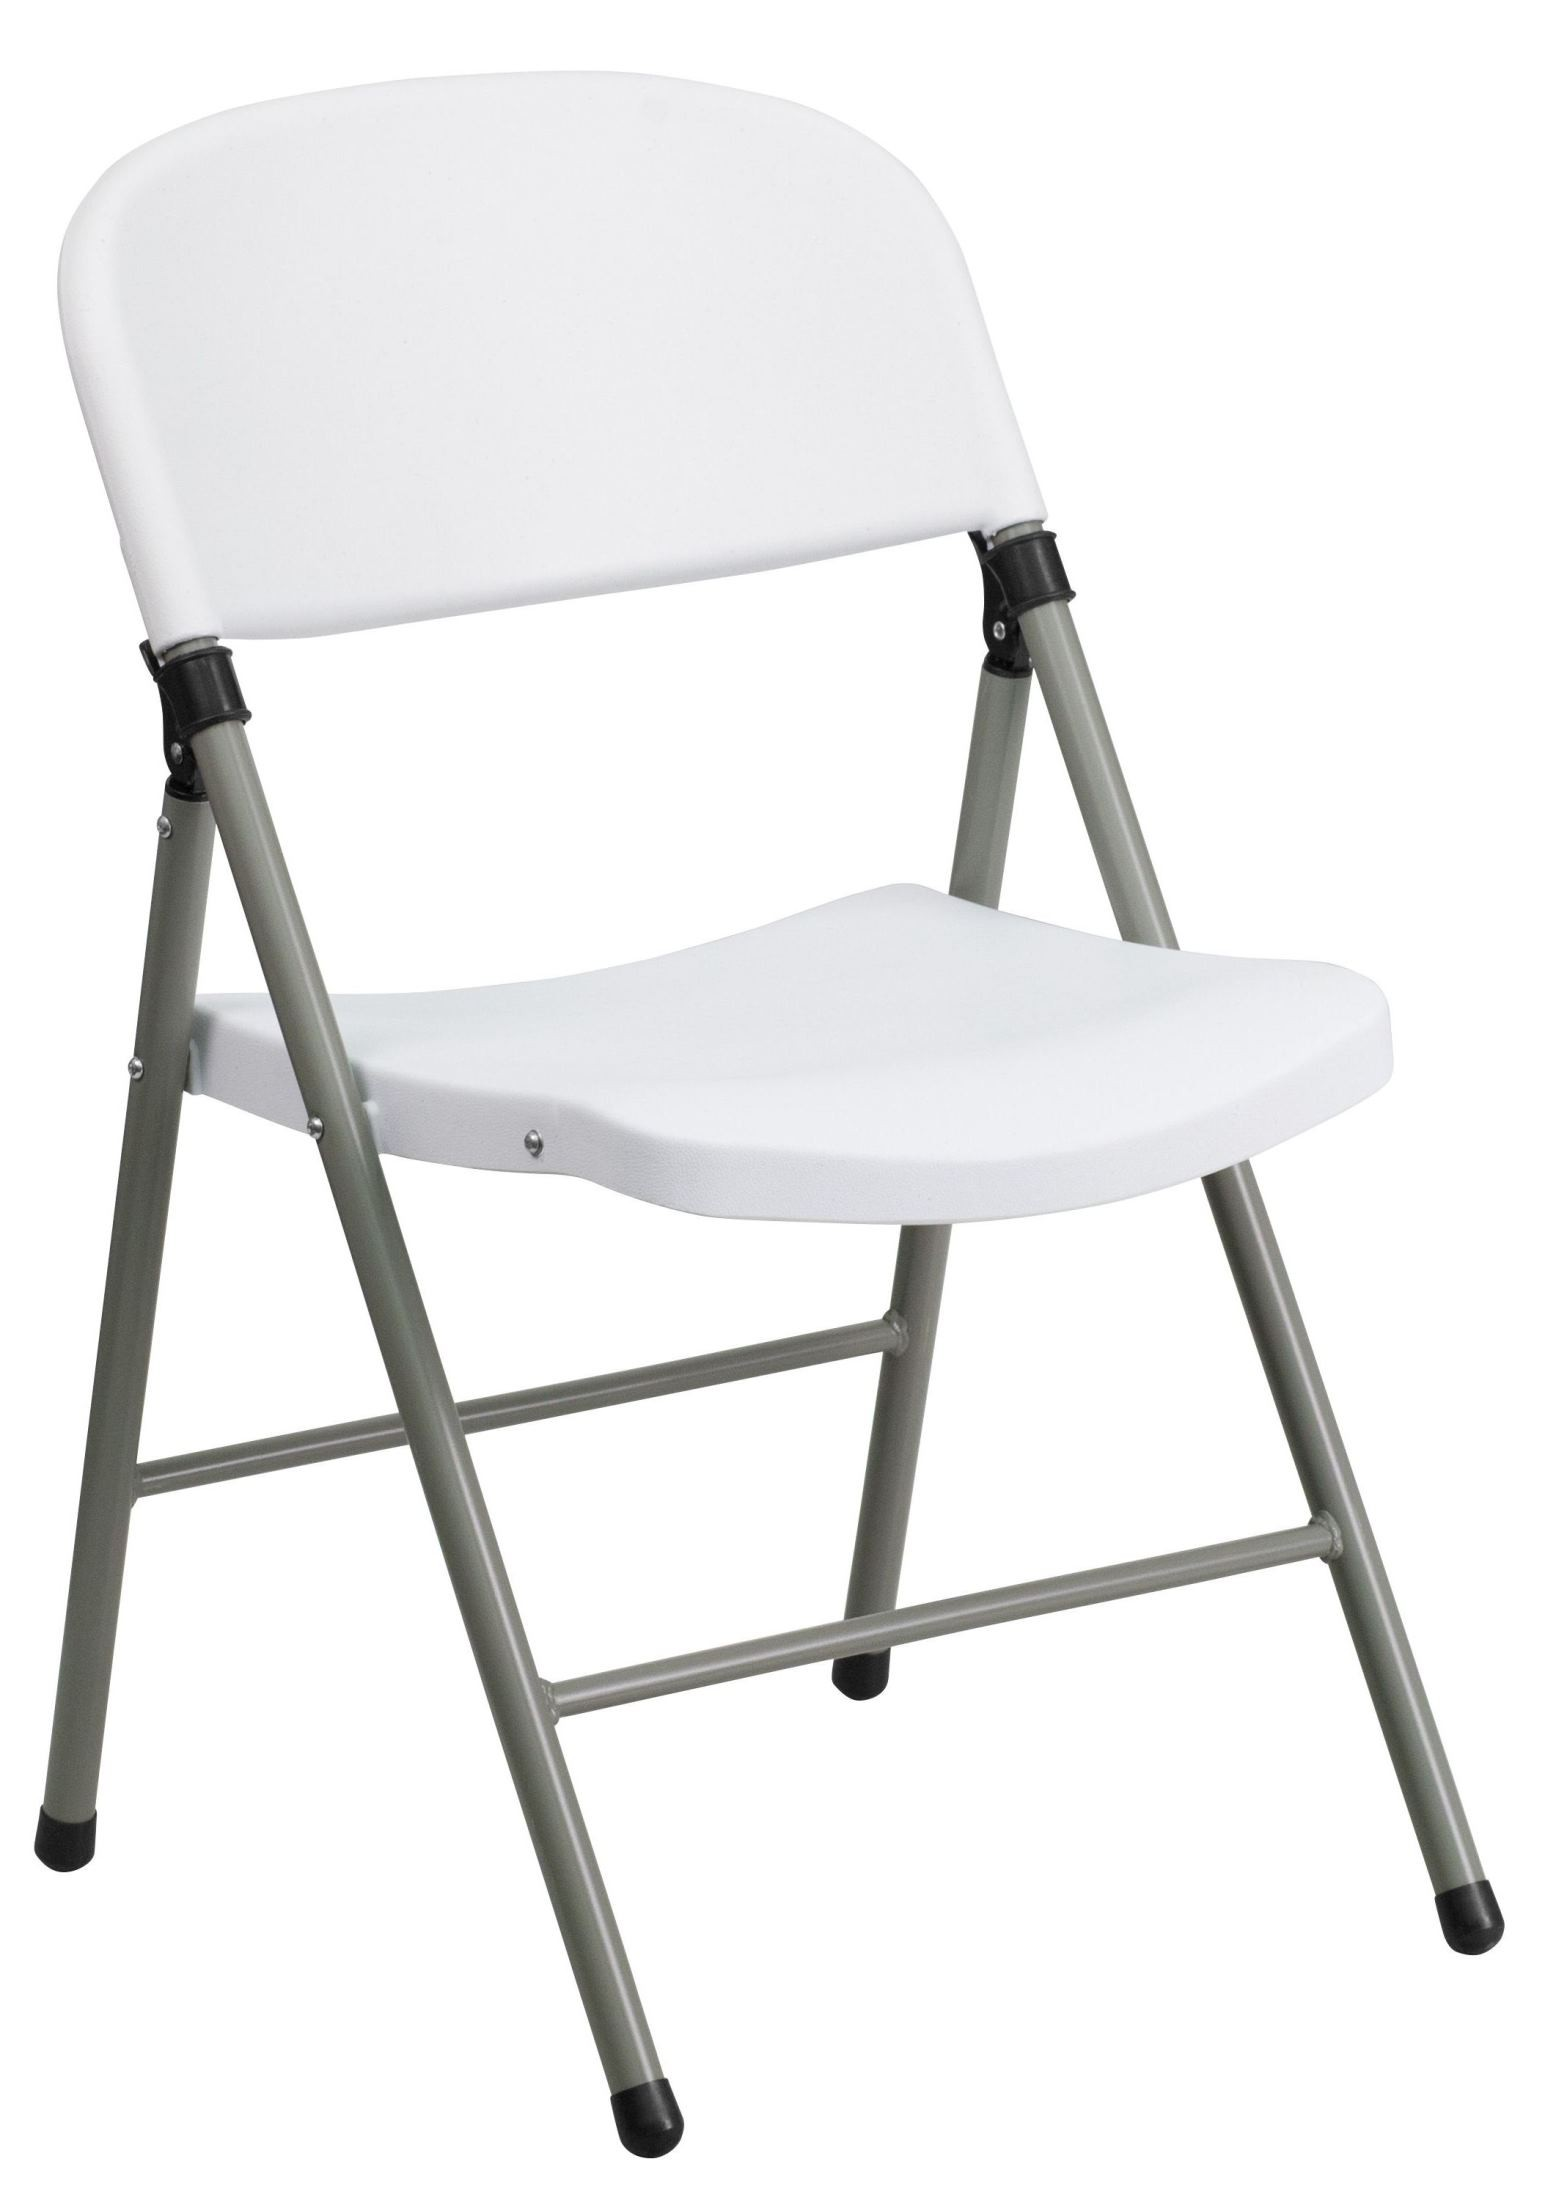 Hercules Series White Plastic Folding Chair With Gray Frame From Renegade DA